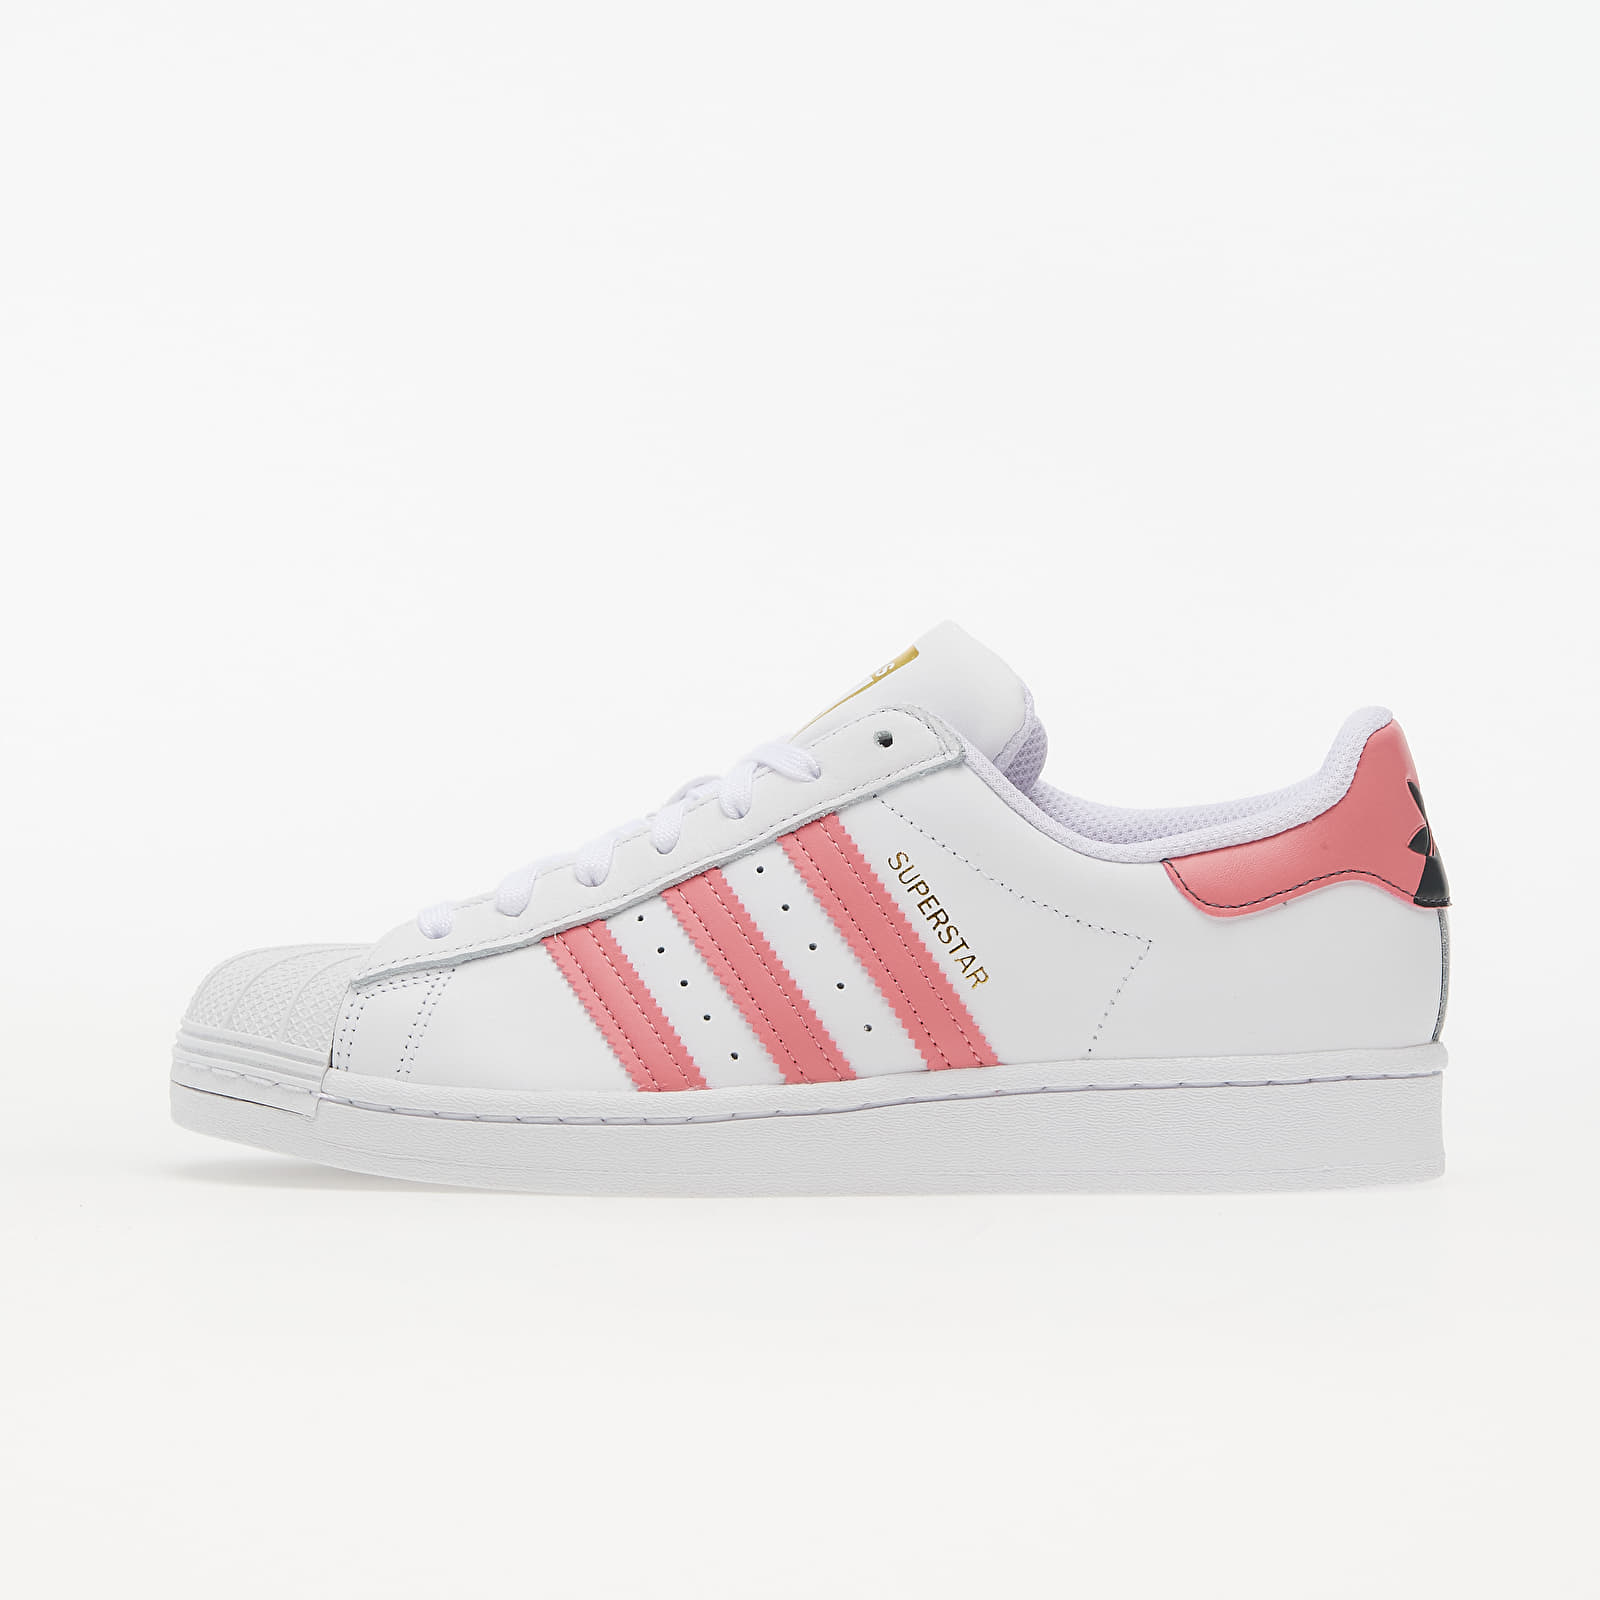 adidas Superstar W Ftw White/ Blue Oxigen/ Gold Metalic EUR 38